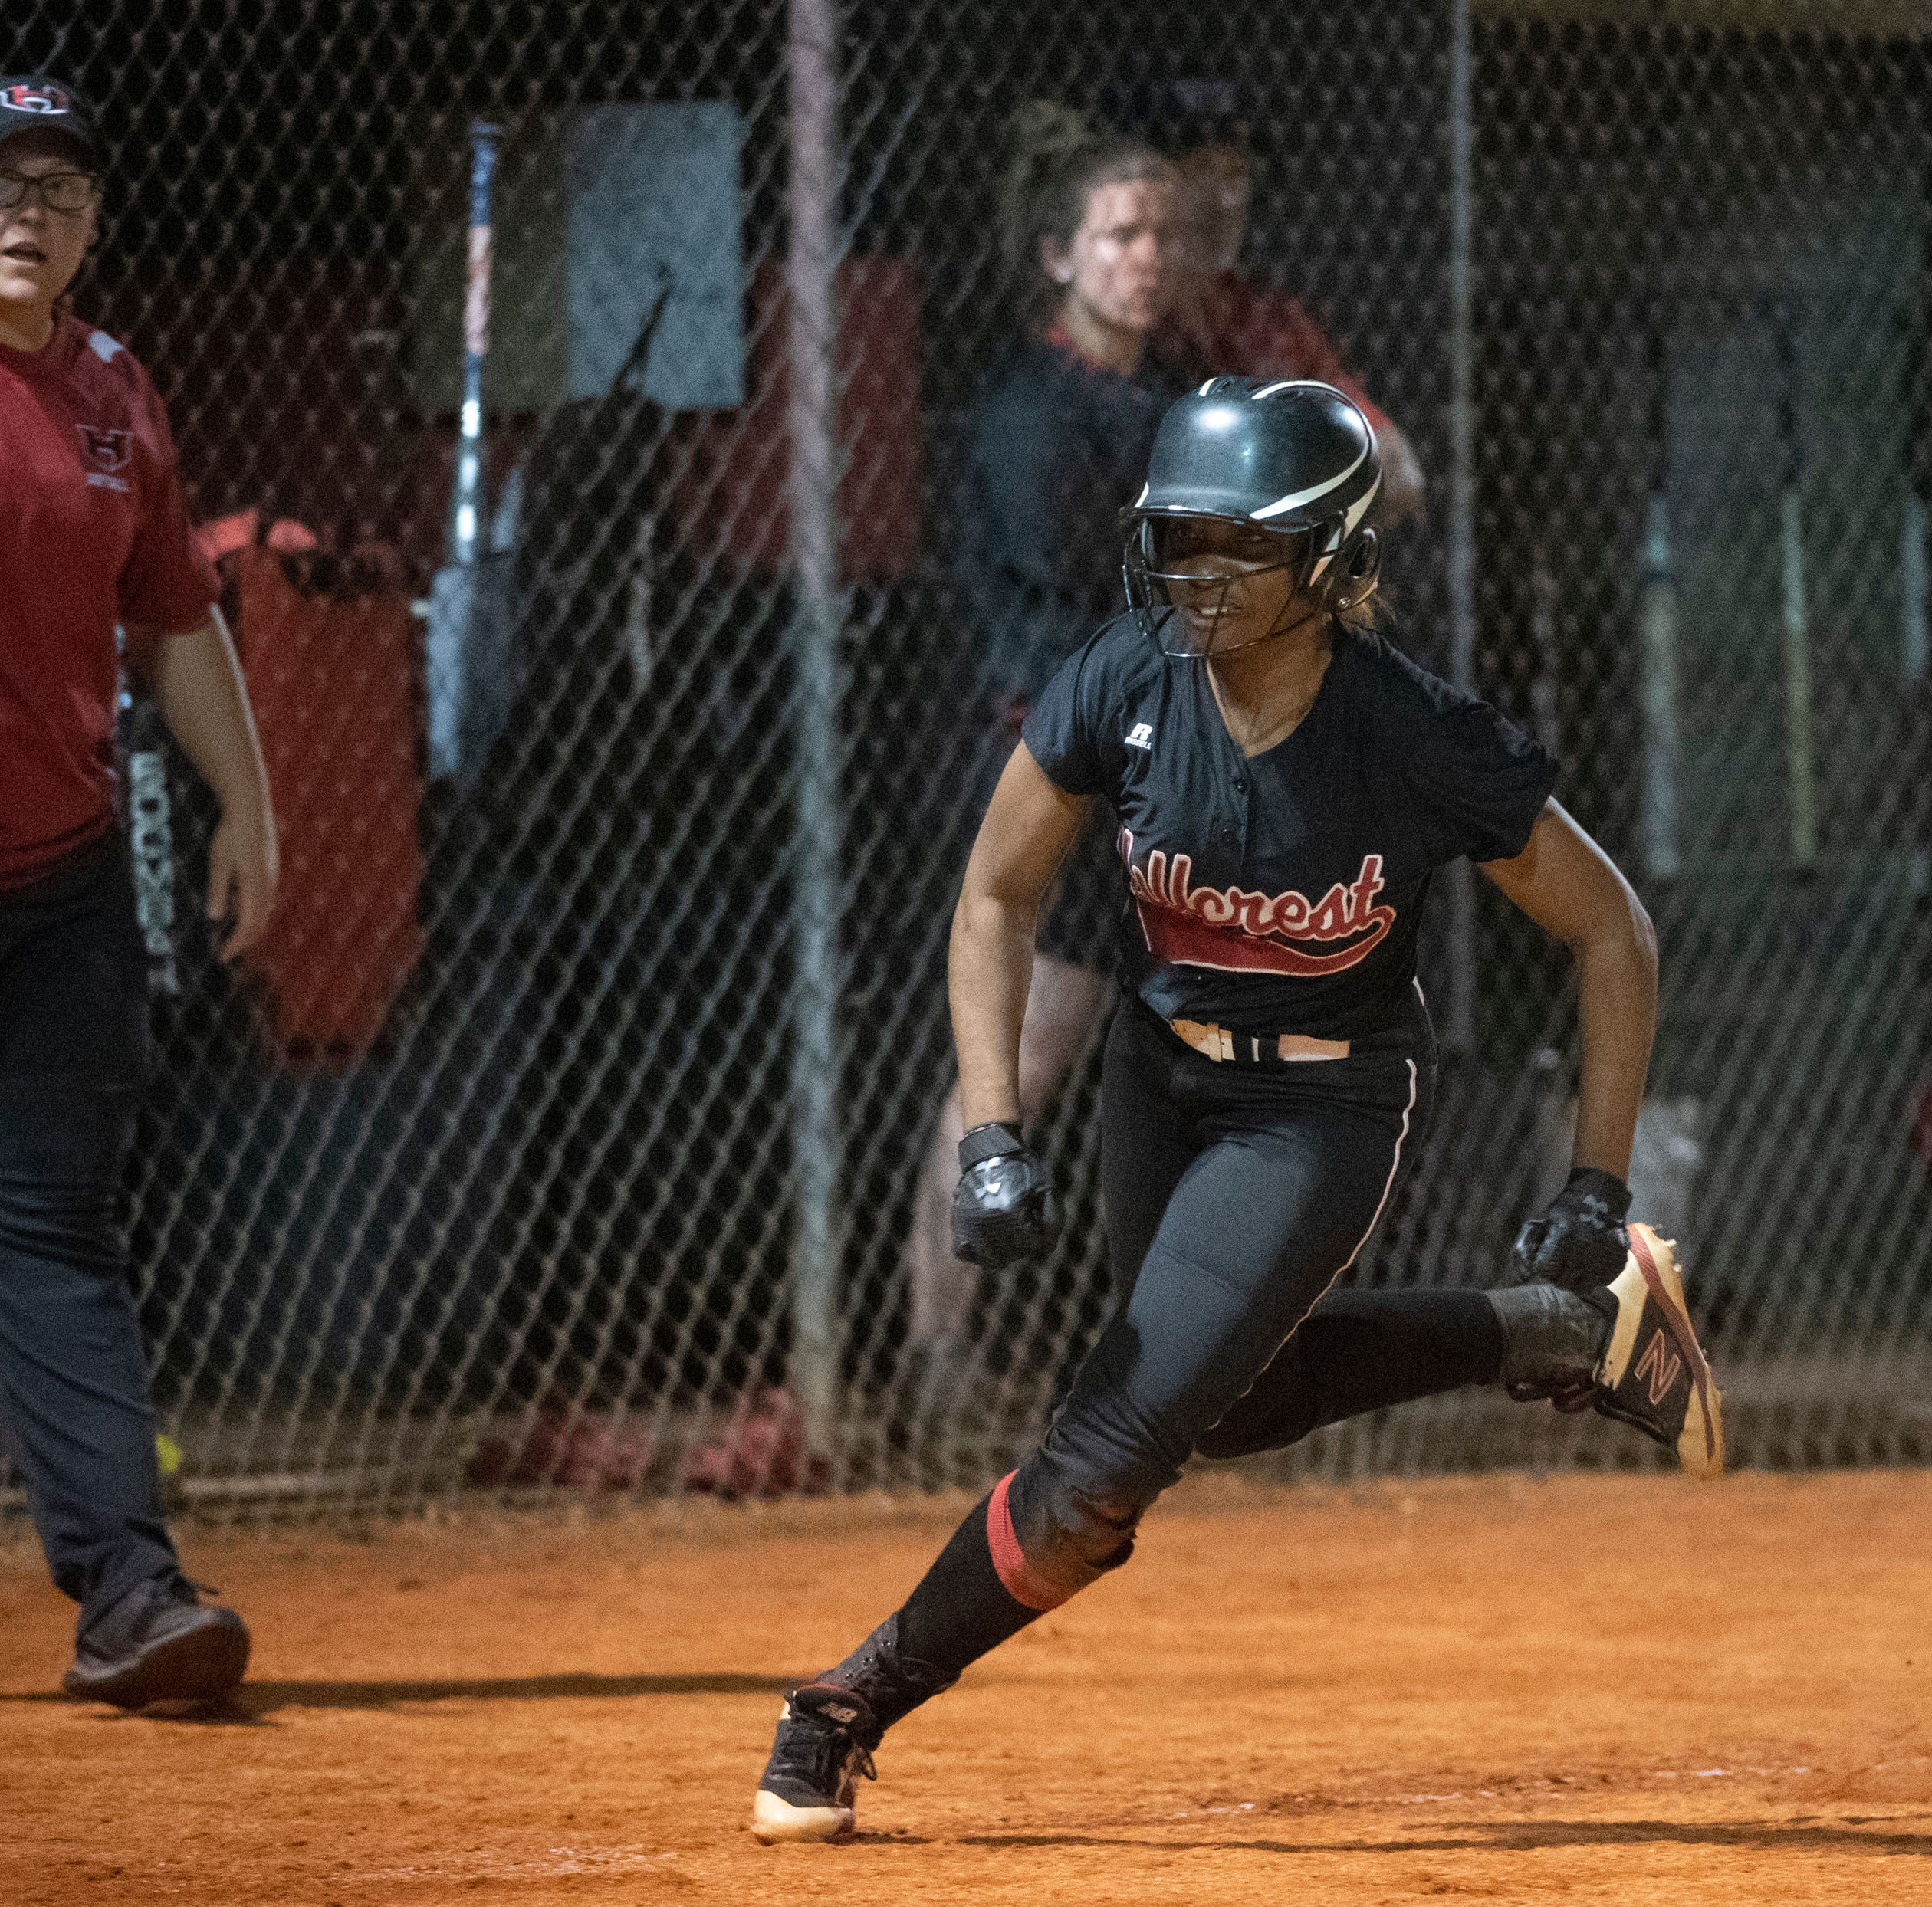 Hillcrest's Alexis Hargrove (24) runs home to score against Boiling Springs High School during the game at Hillcrest.